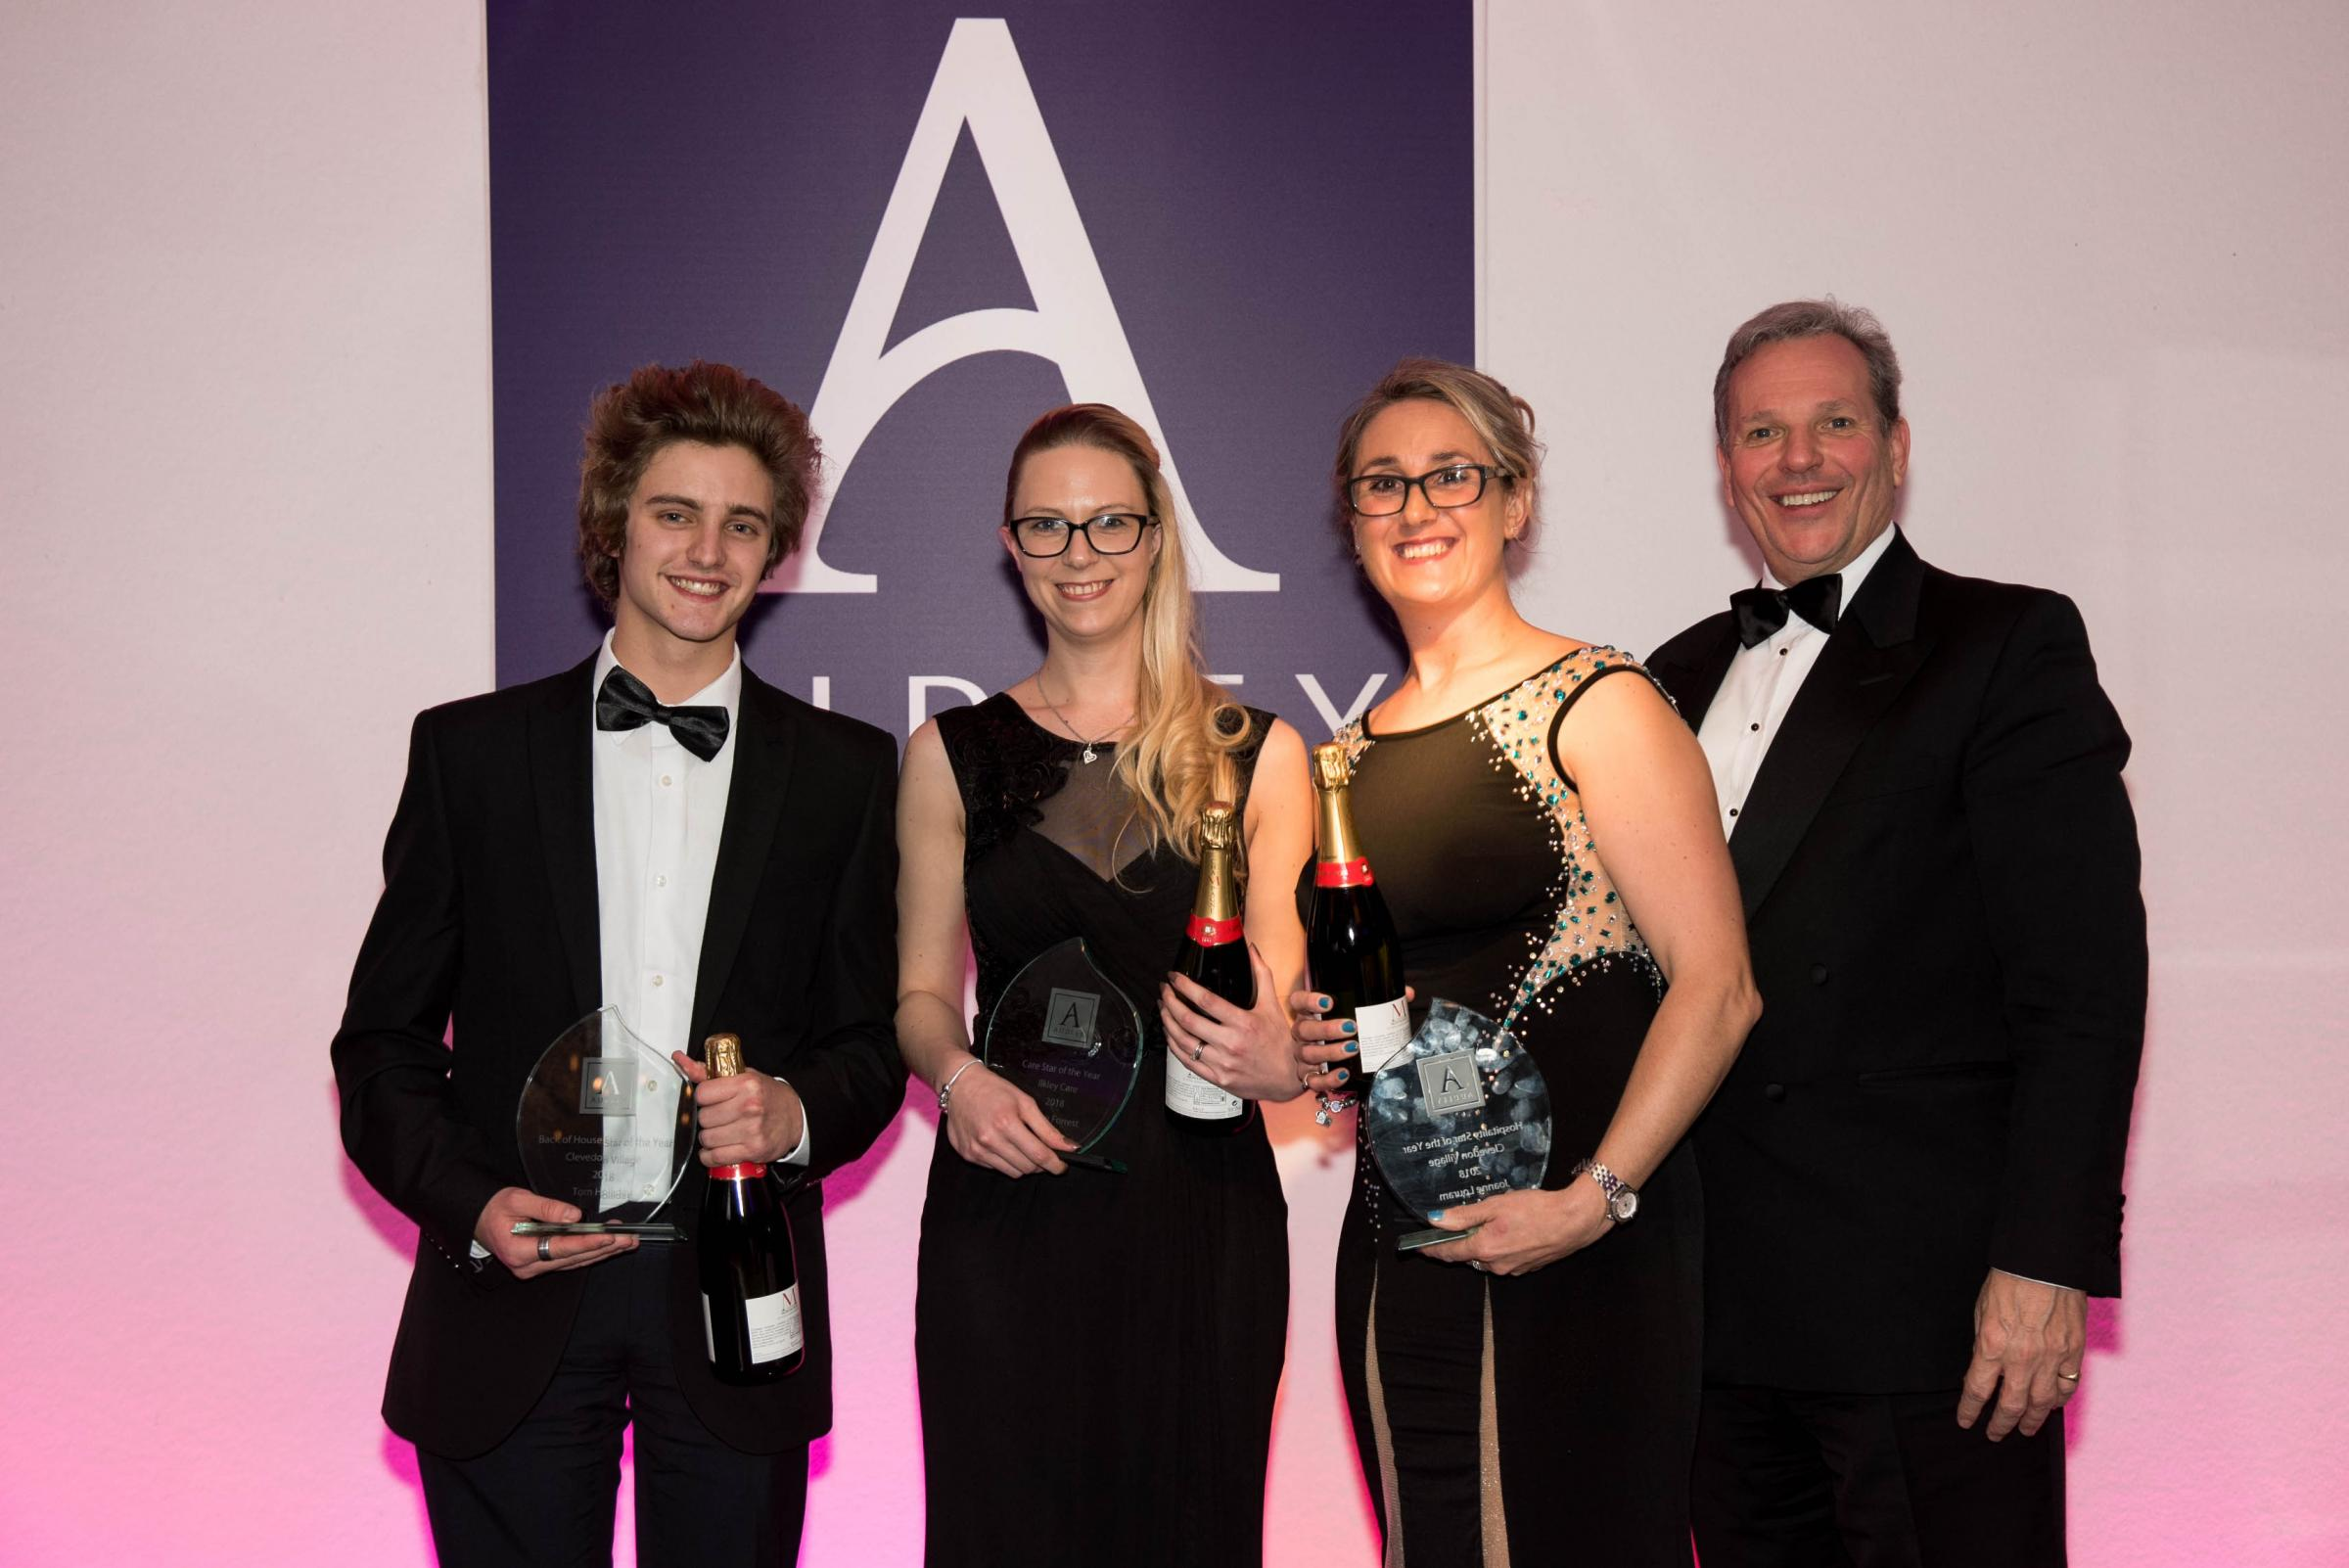 Pictured with their awards are from the left Tom Holliday, Robyn Forrest and Emma-Louise Fawcitt with Nick Sanderson, CEO of the Audley Group